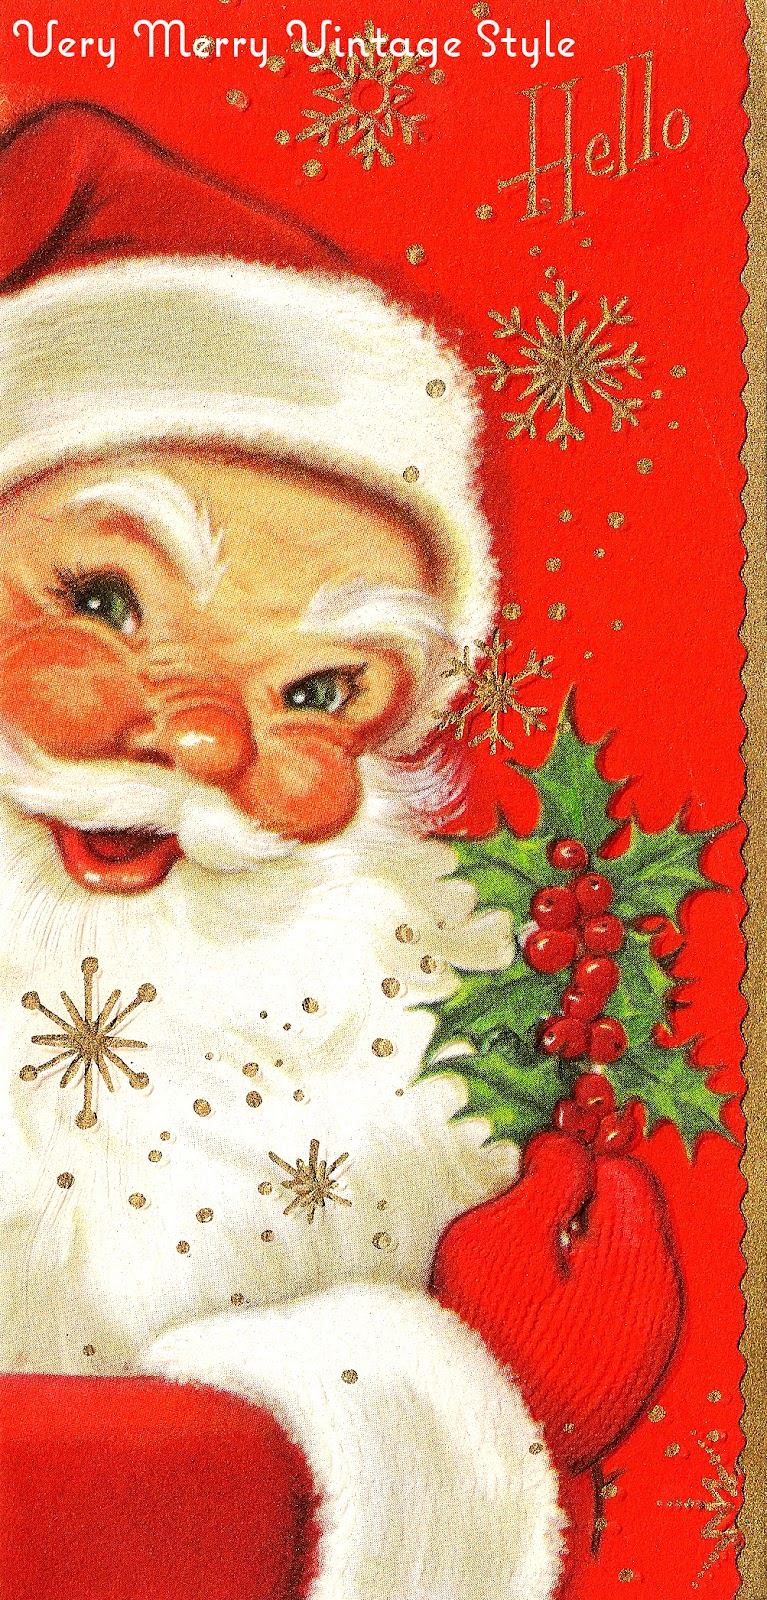 very merry vintage syle hey santa vintage christmas card. Black Bedroom Furniture Sets. Home Design Ideas